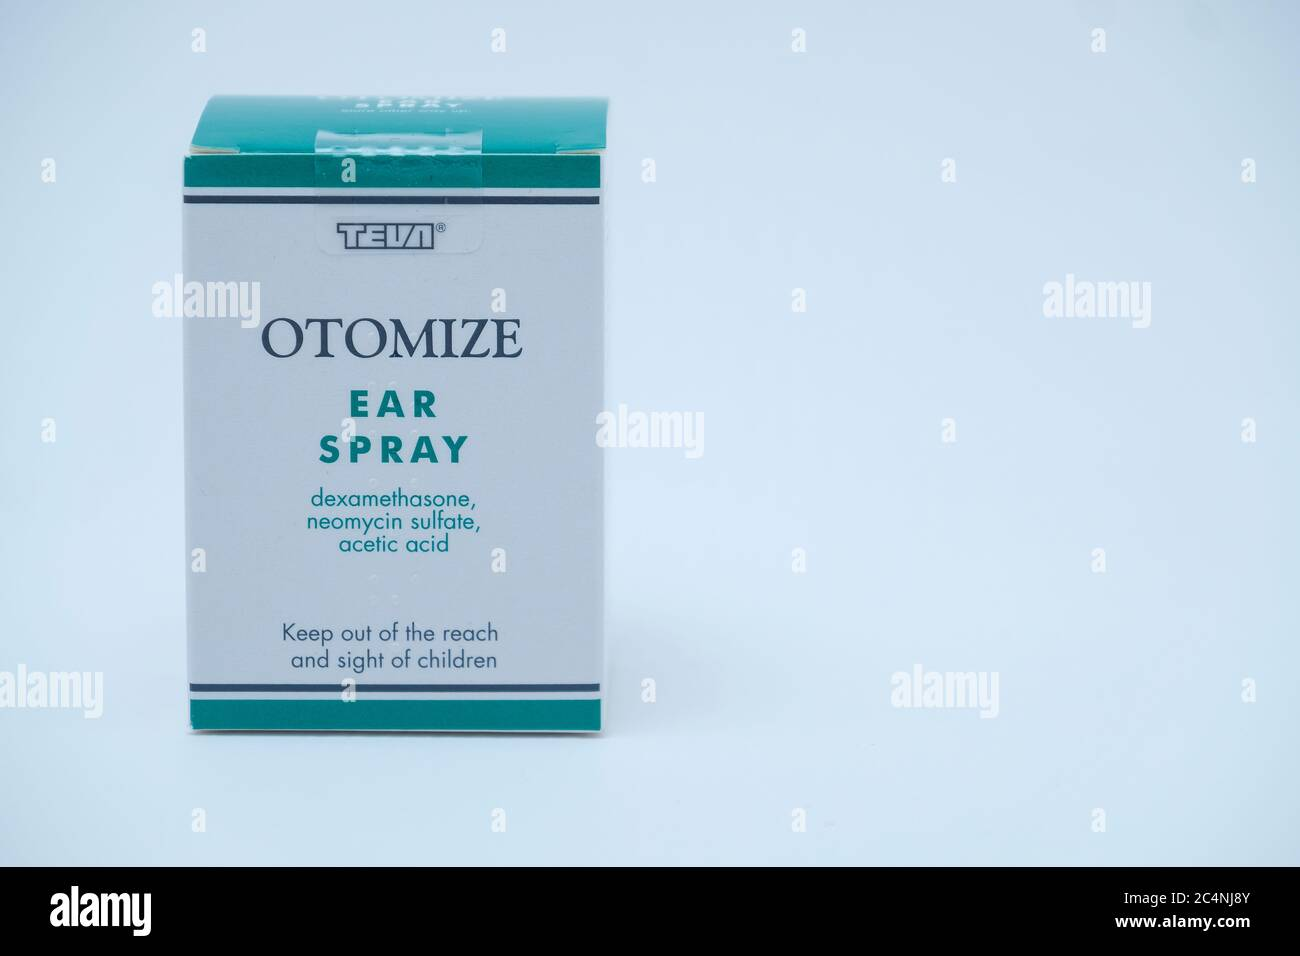 Otomize ear spray on a white background. Stock Photo